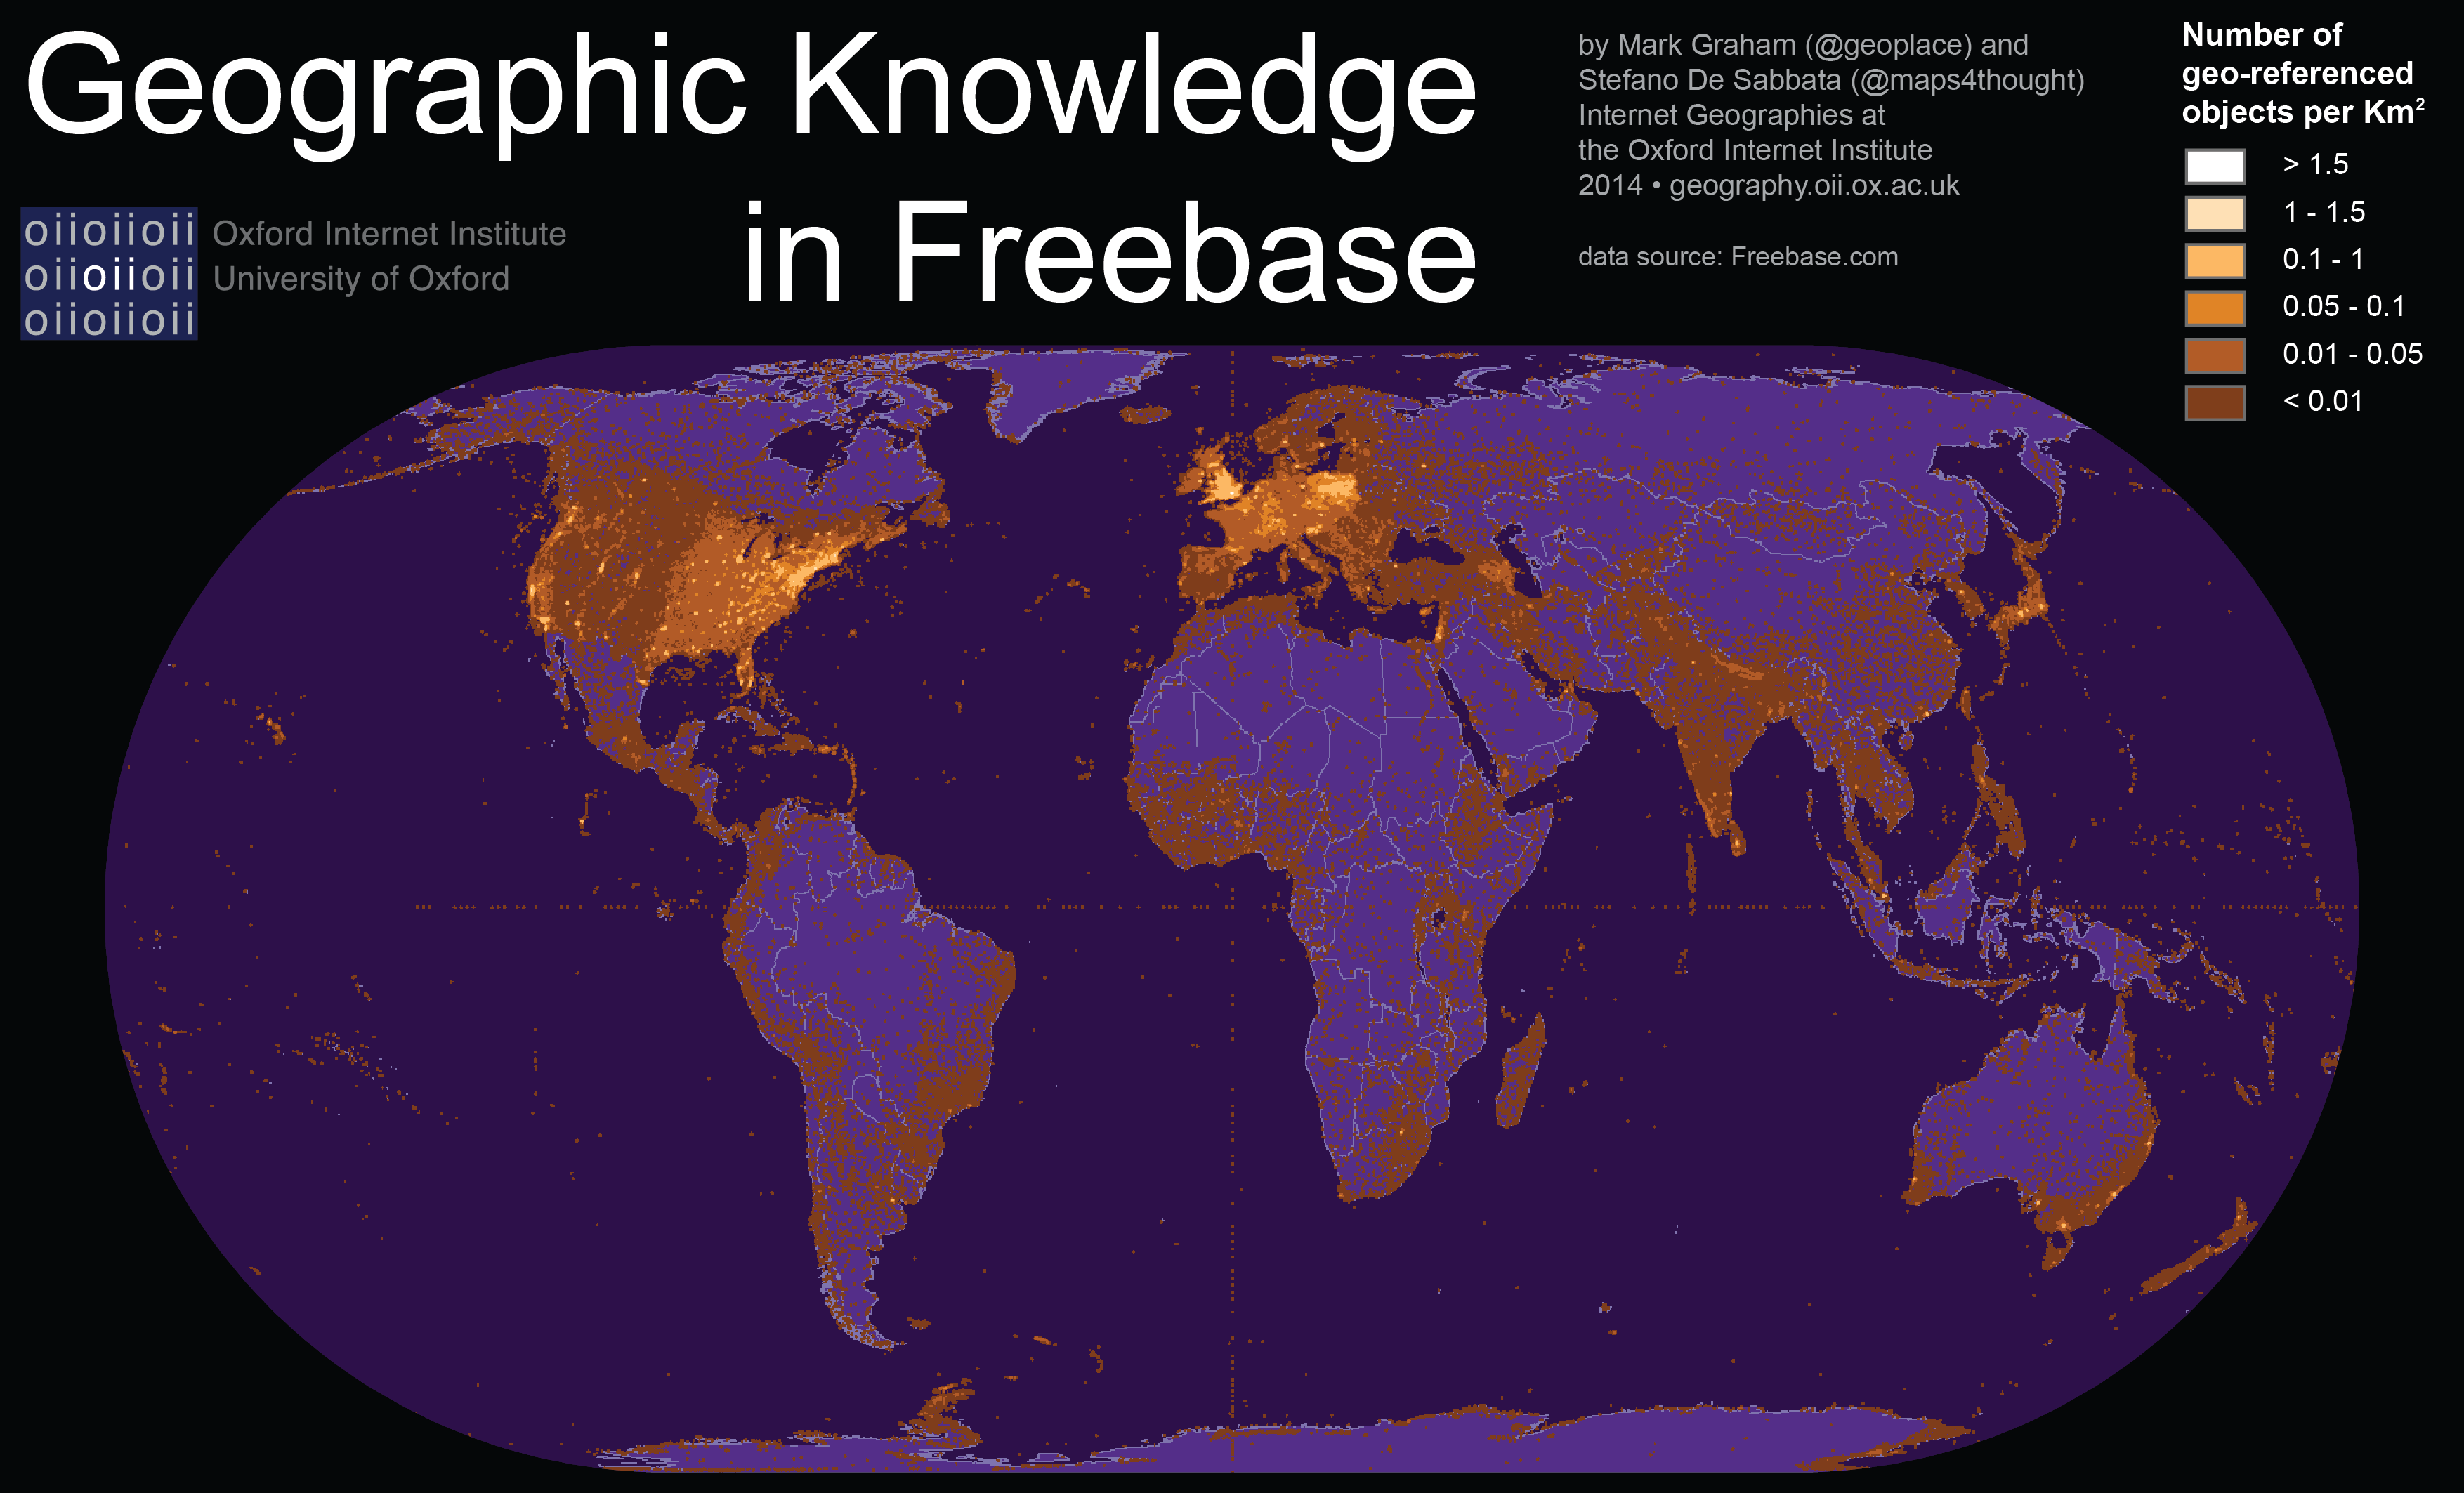 world map of Geographic Knowledge in Freebase